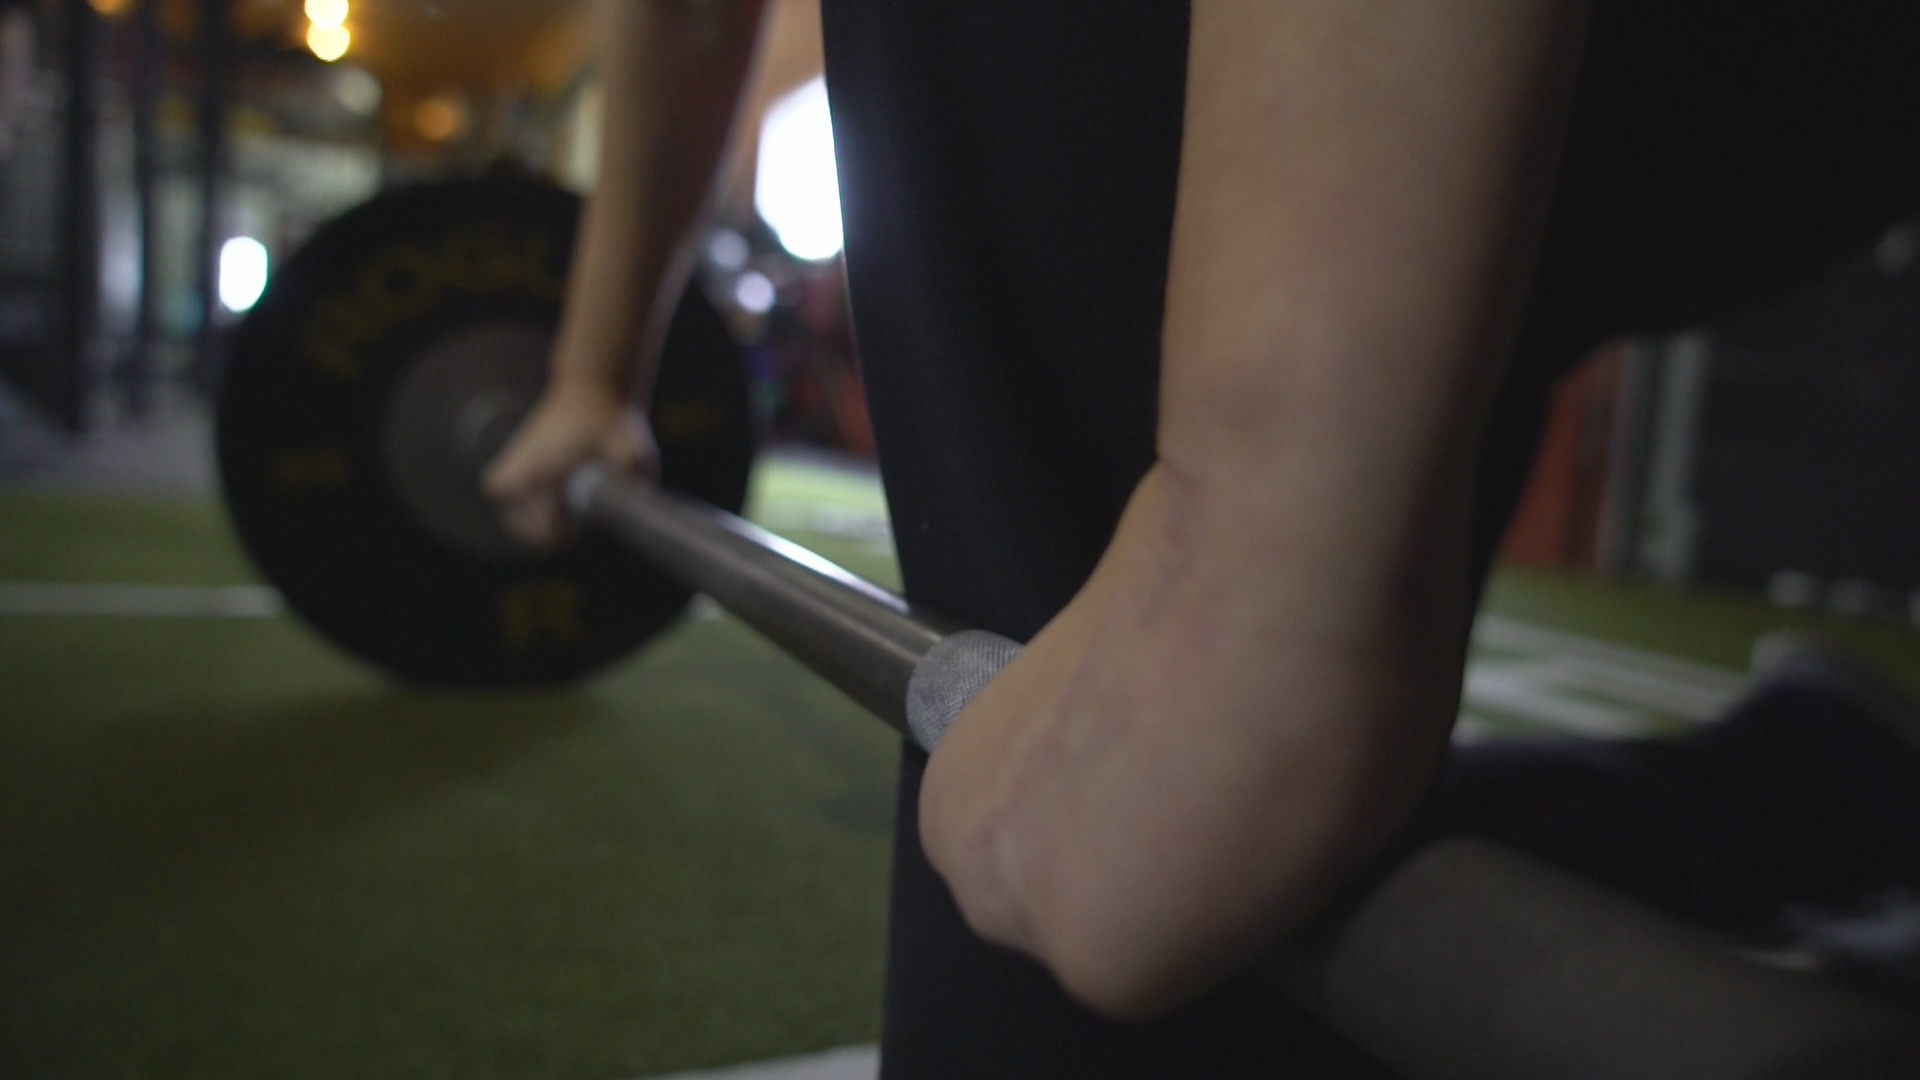 The added gym equipment allows Elaine Dodge-Lynch to take her hands out of the equation for deadlifts. (Gary Quigley/CBC)